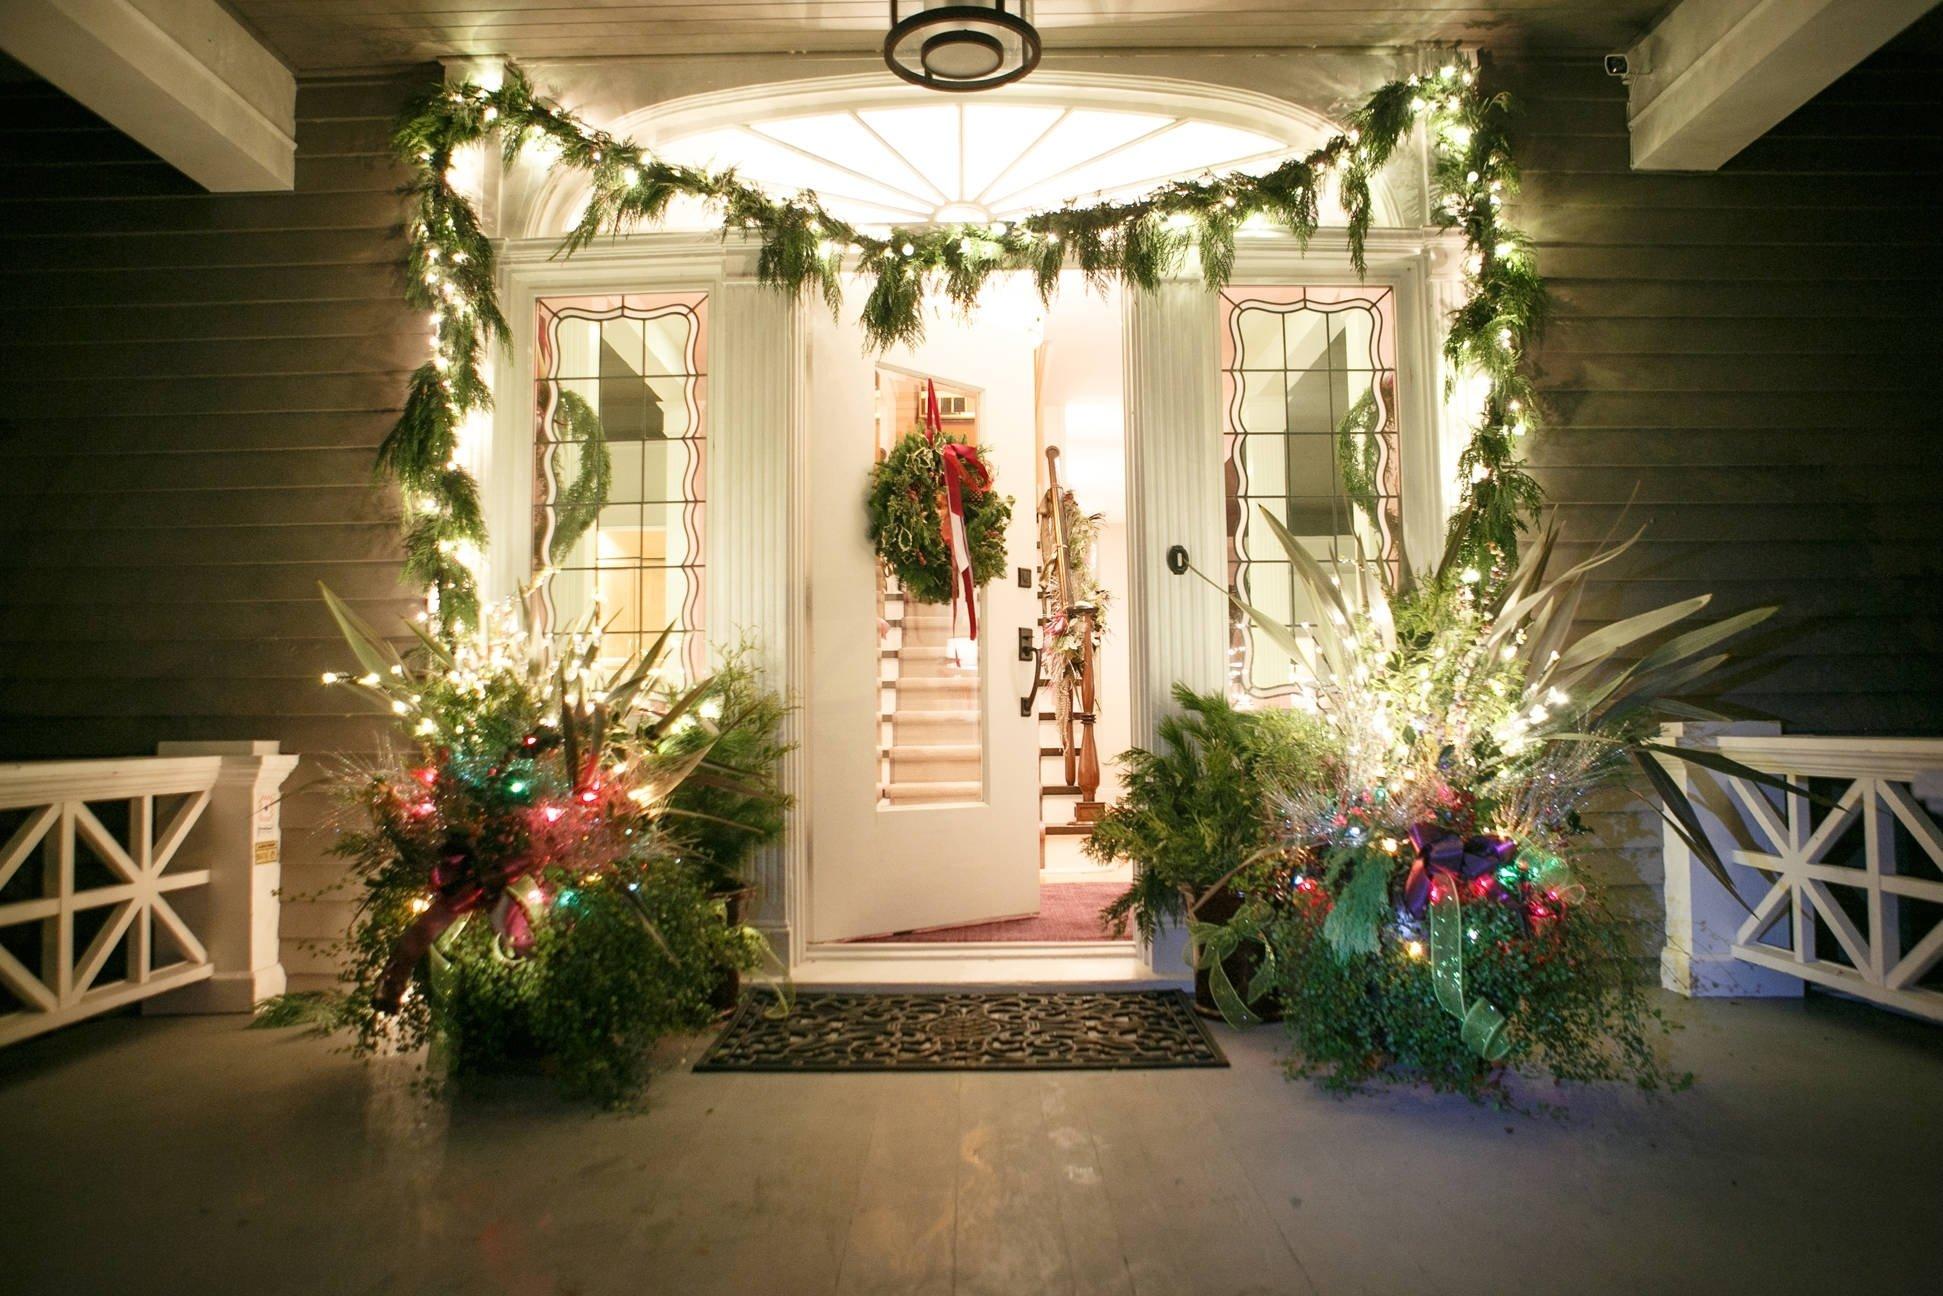 10 Fabulous Christmas Decorating Ideas For Windows exterior design christmas wreaths ideas and garland with lighting 2020